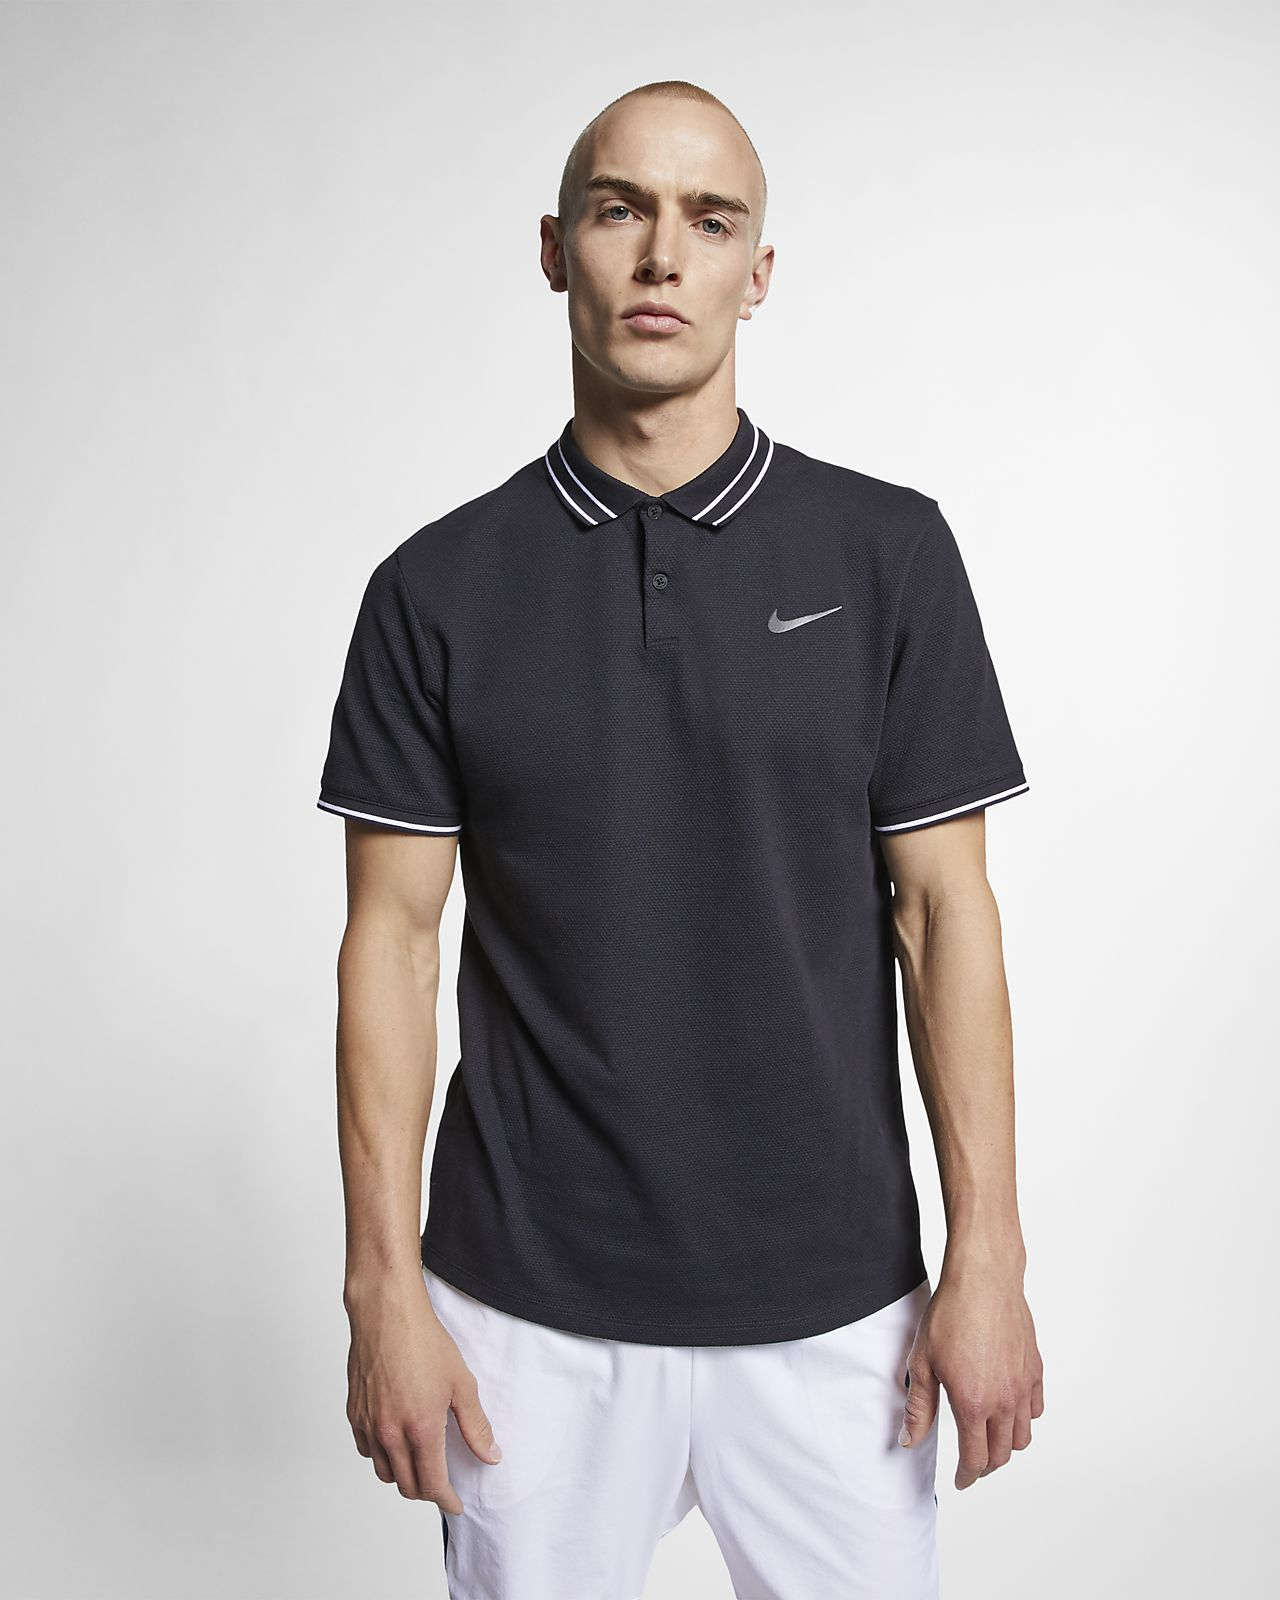 36586b459 Nike Mens Tennis Polo Shirts – EDGE Engineering and Consulting Limited